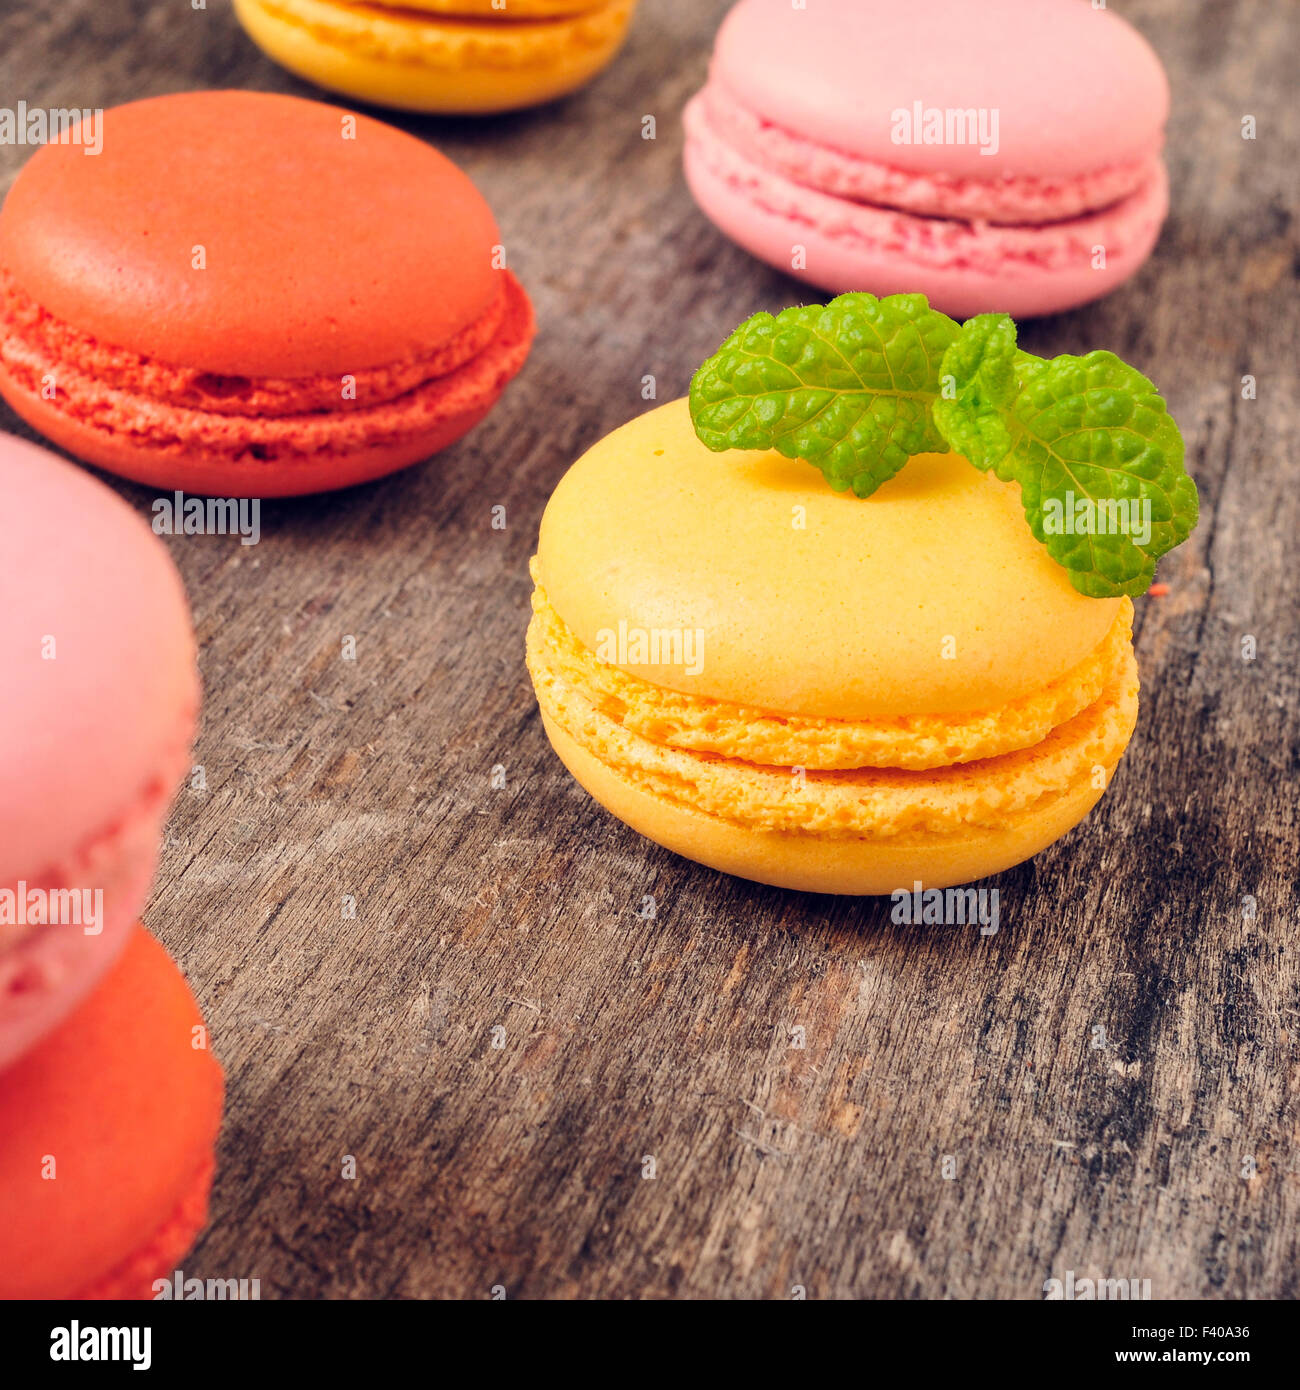 some appetizing macarons with different colors and flavors on a rustic wooden table - Stock Image